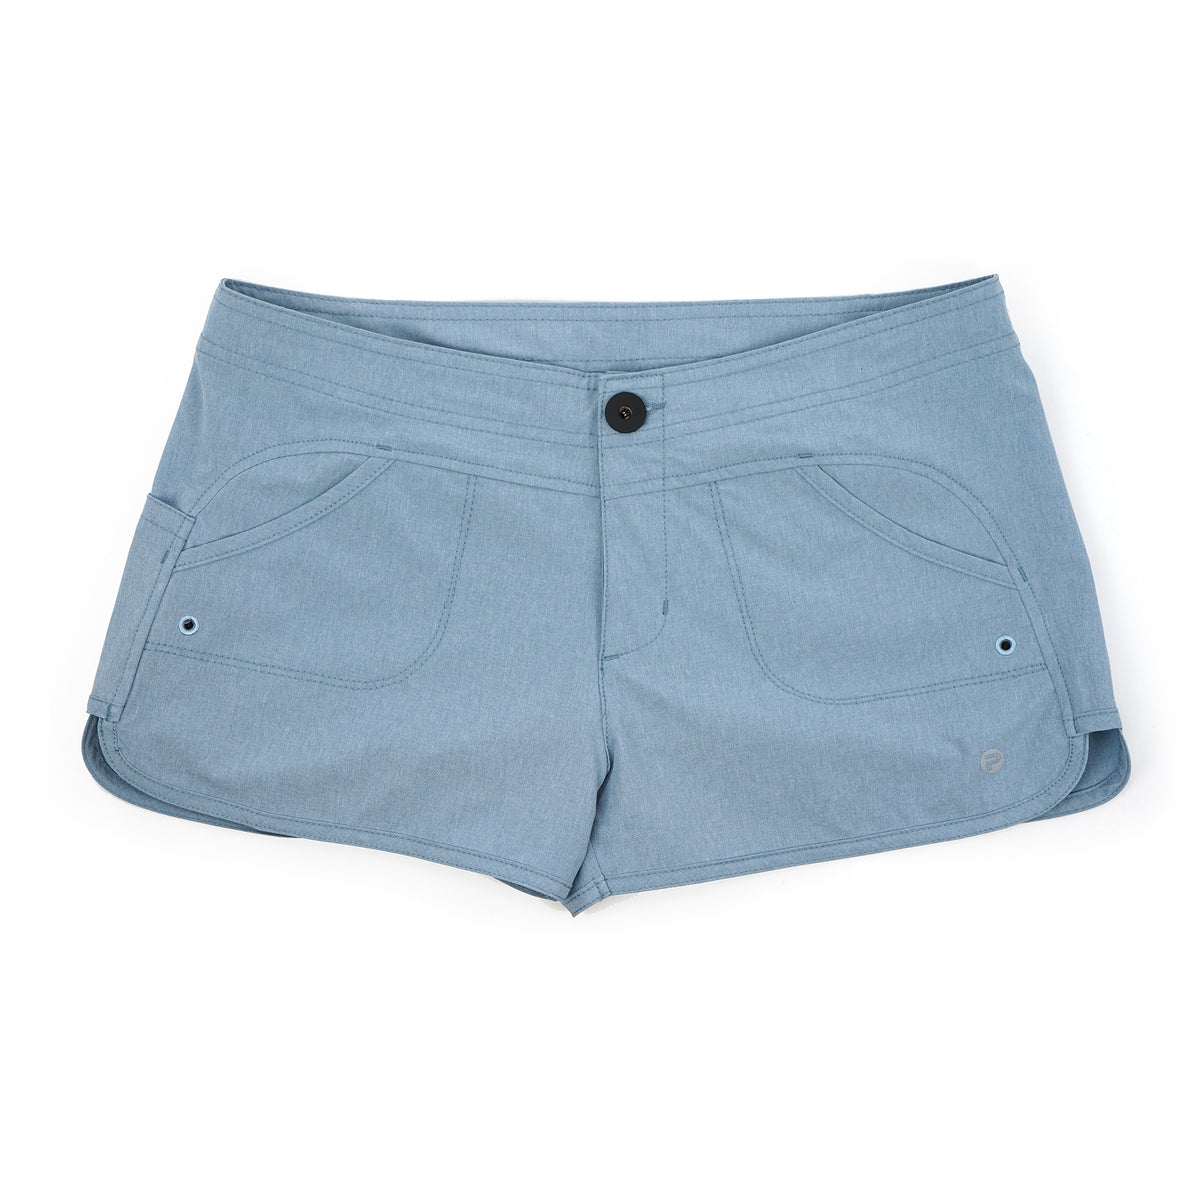 Deep Sea Hybrid Fishing Shorts - Womens Big Image - 1